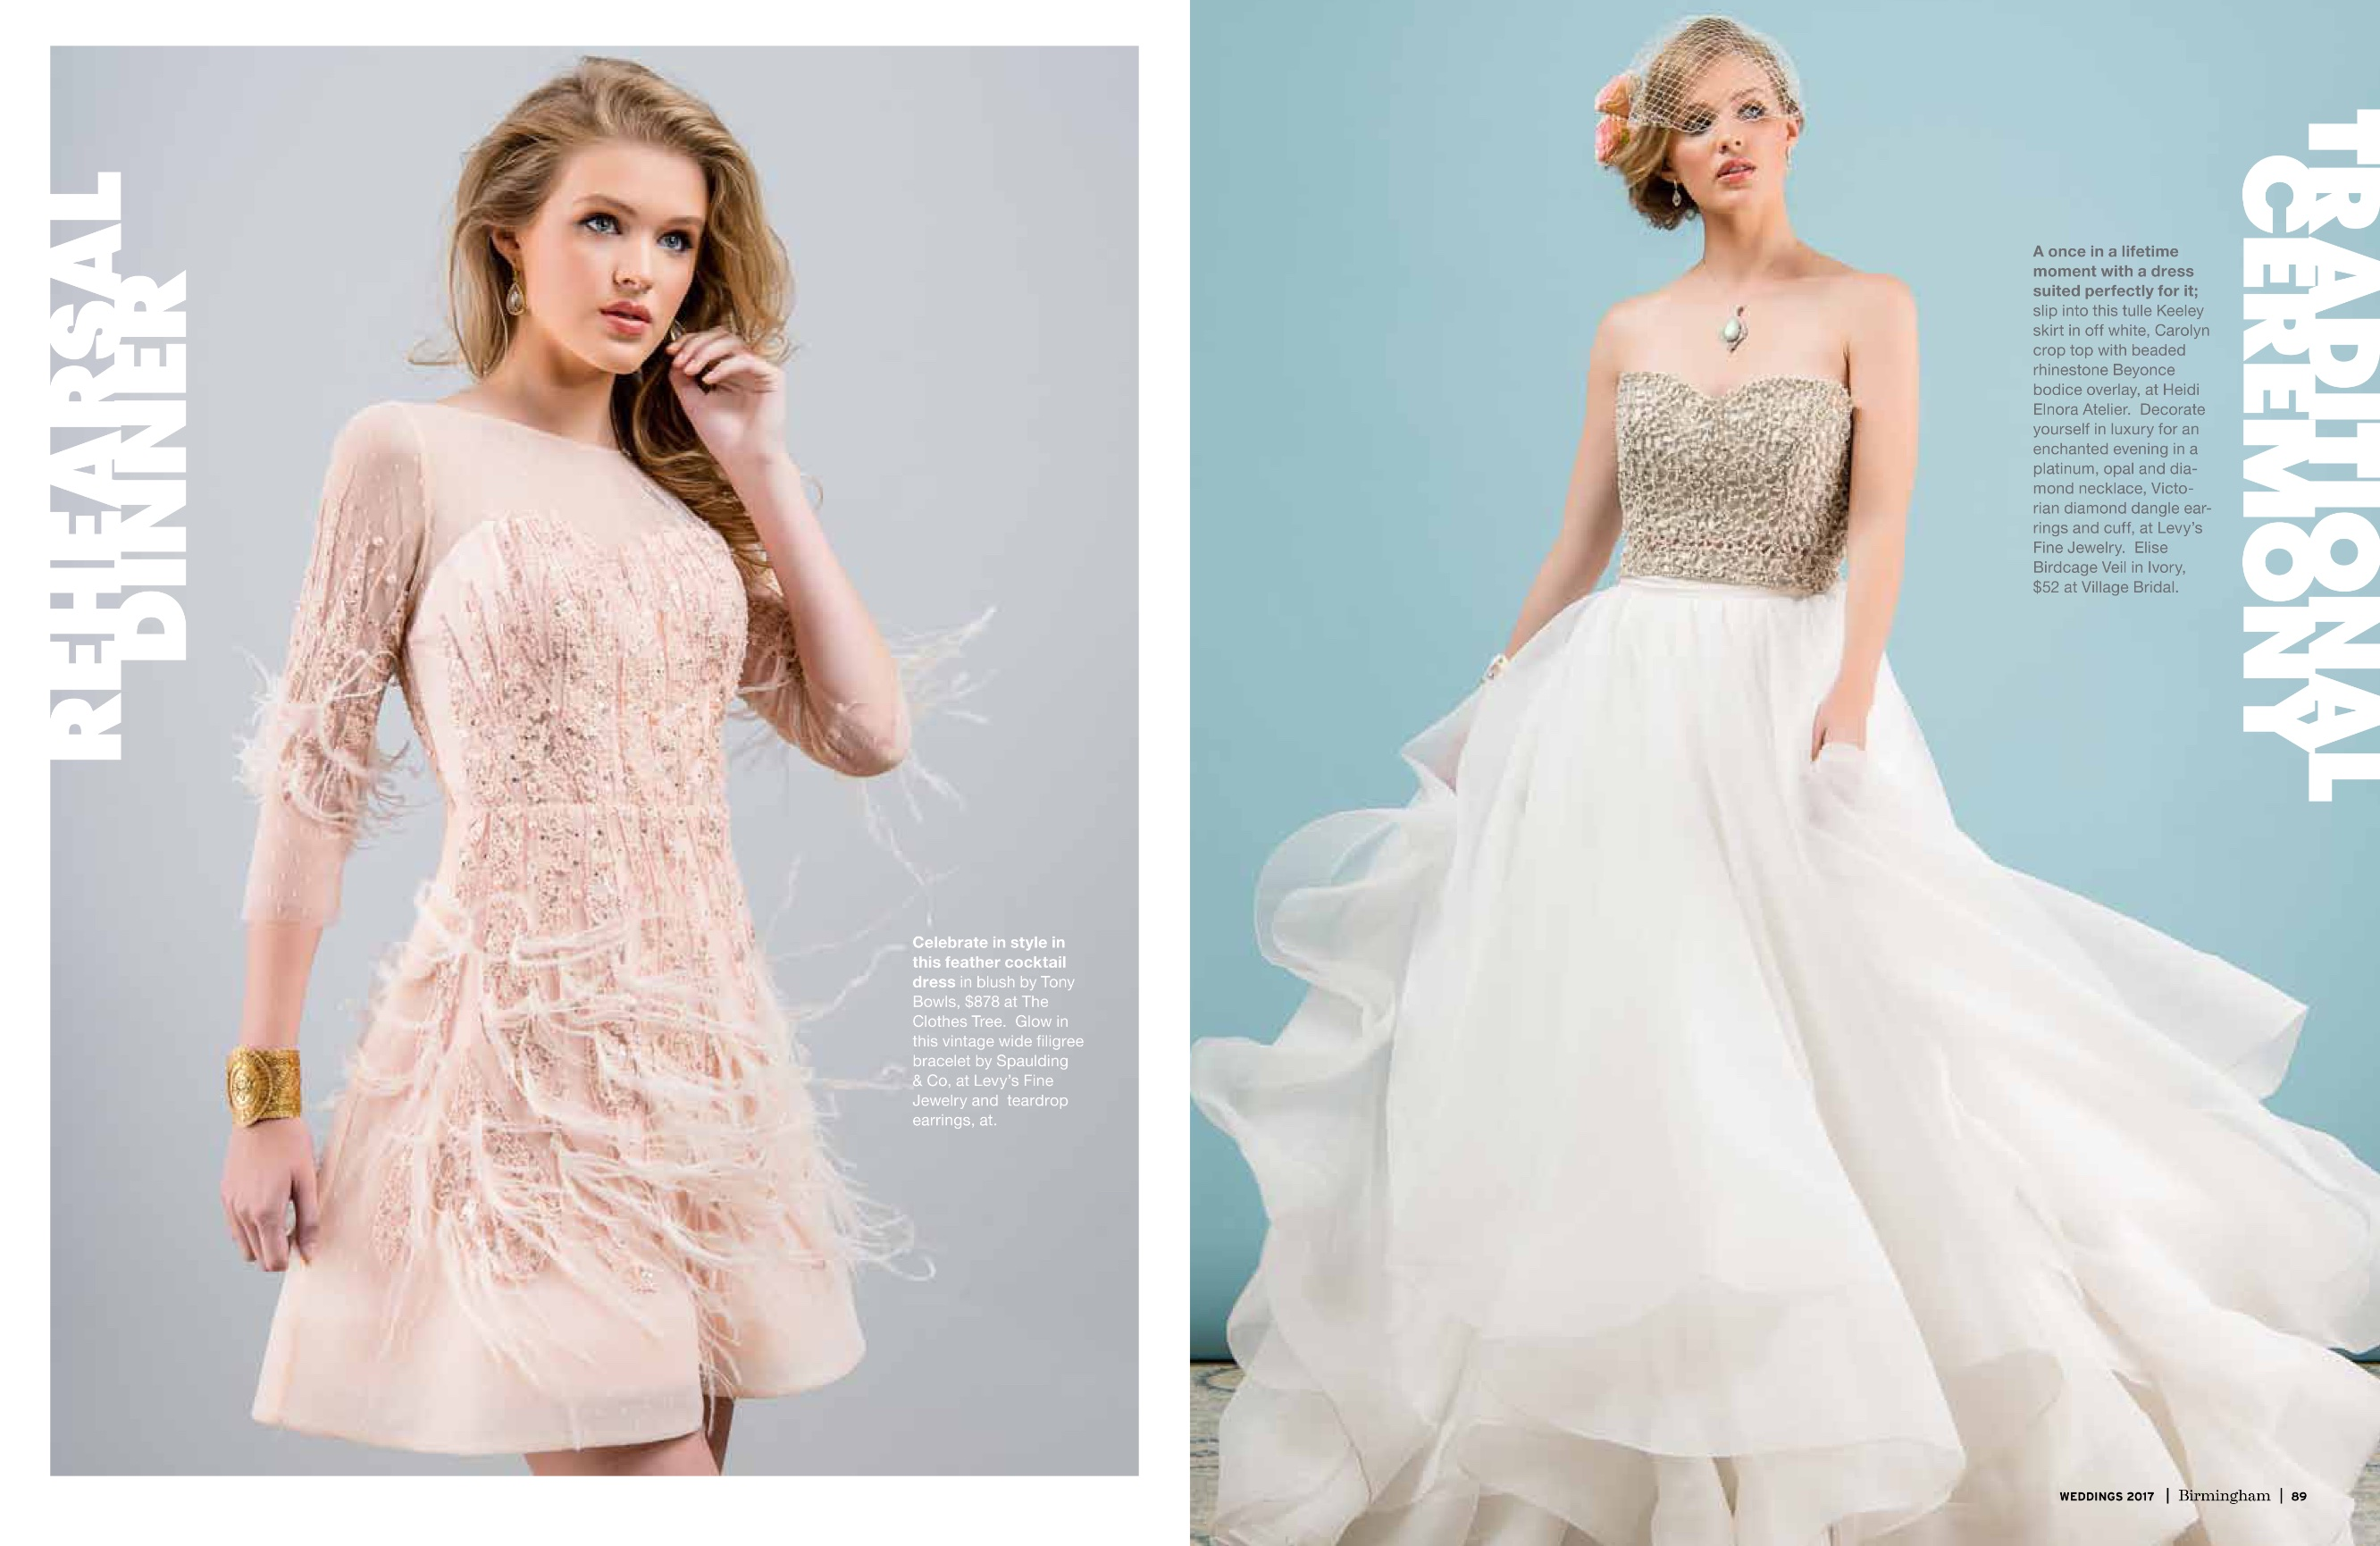 covers - Heather Durham Photography